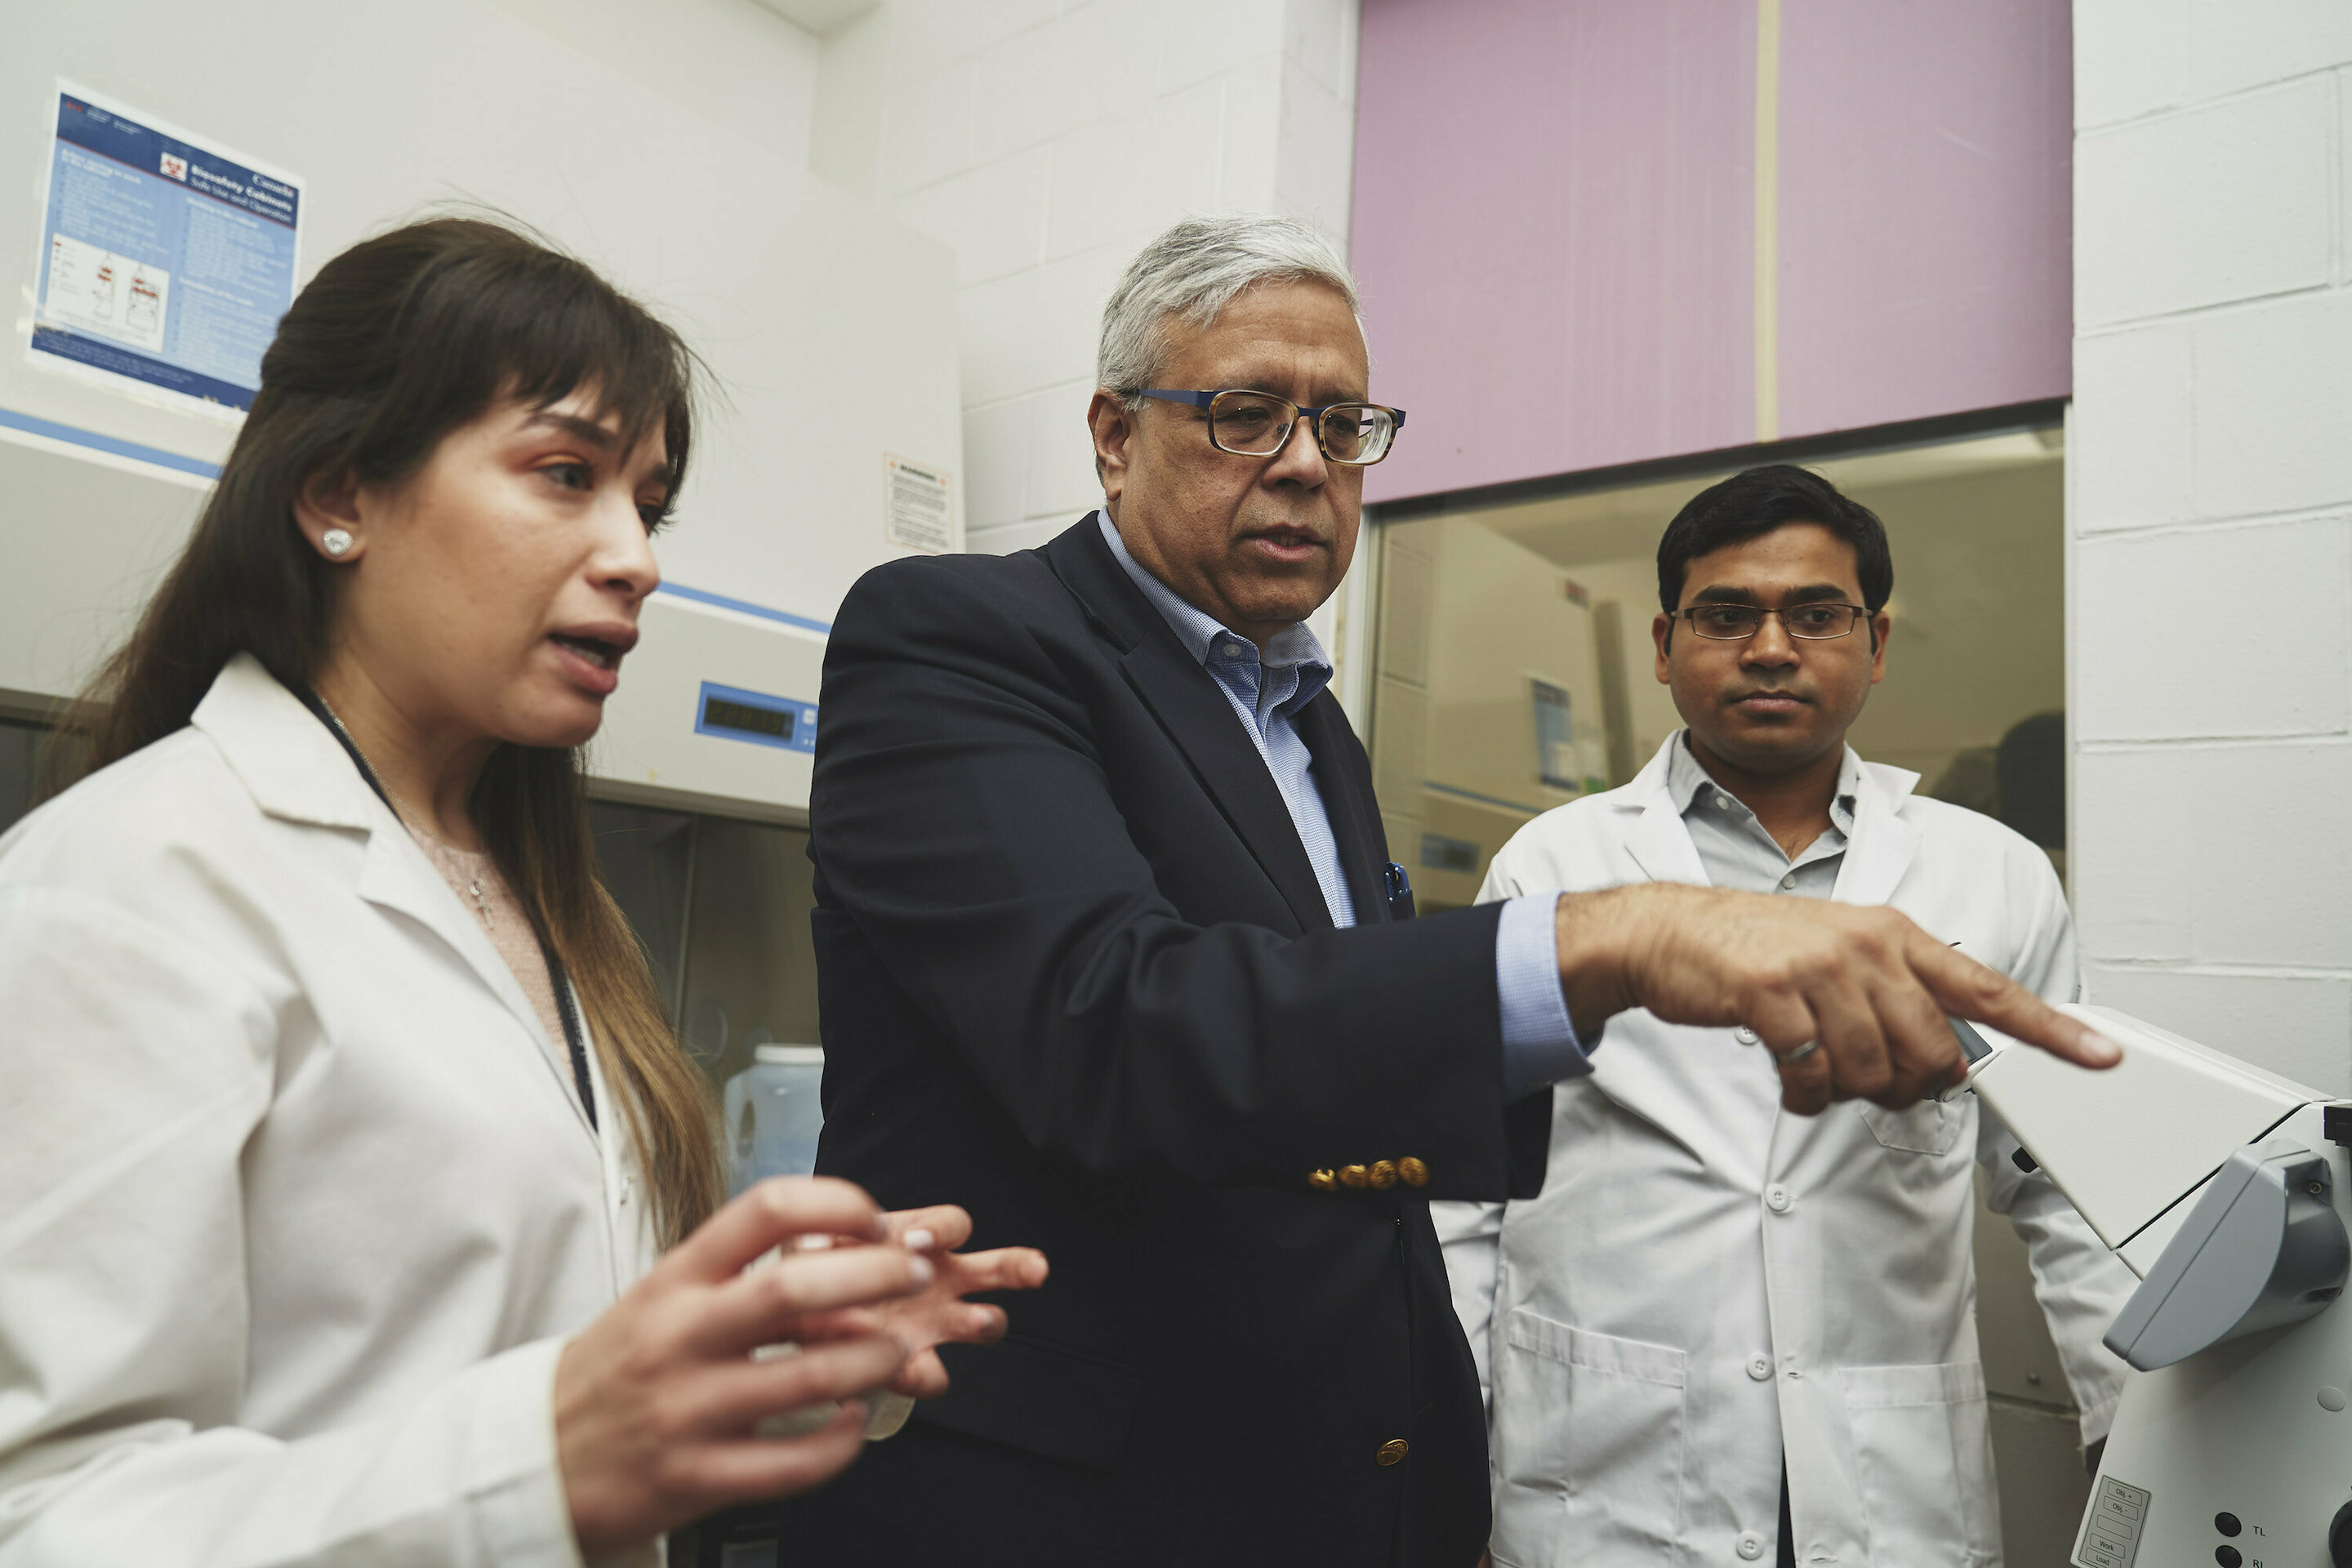 Ishwar Puri, centre, with his research team, Sarah Mishriki, PhD candidate in the School of Biomedical Engineering and lead author, and Rakesh Sahu, a research associate. Photo via Jin Lee, McMaster University, Faculty of Engineering.